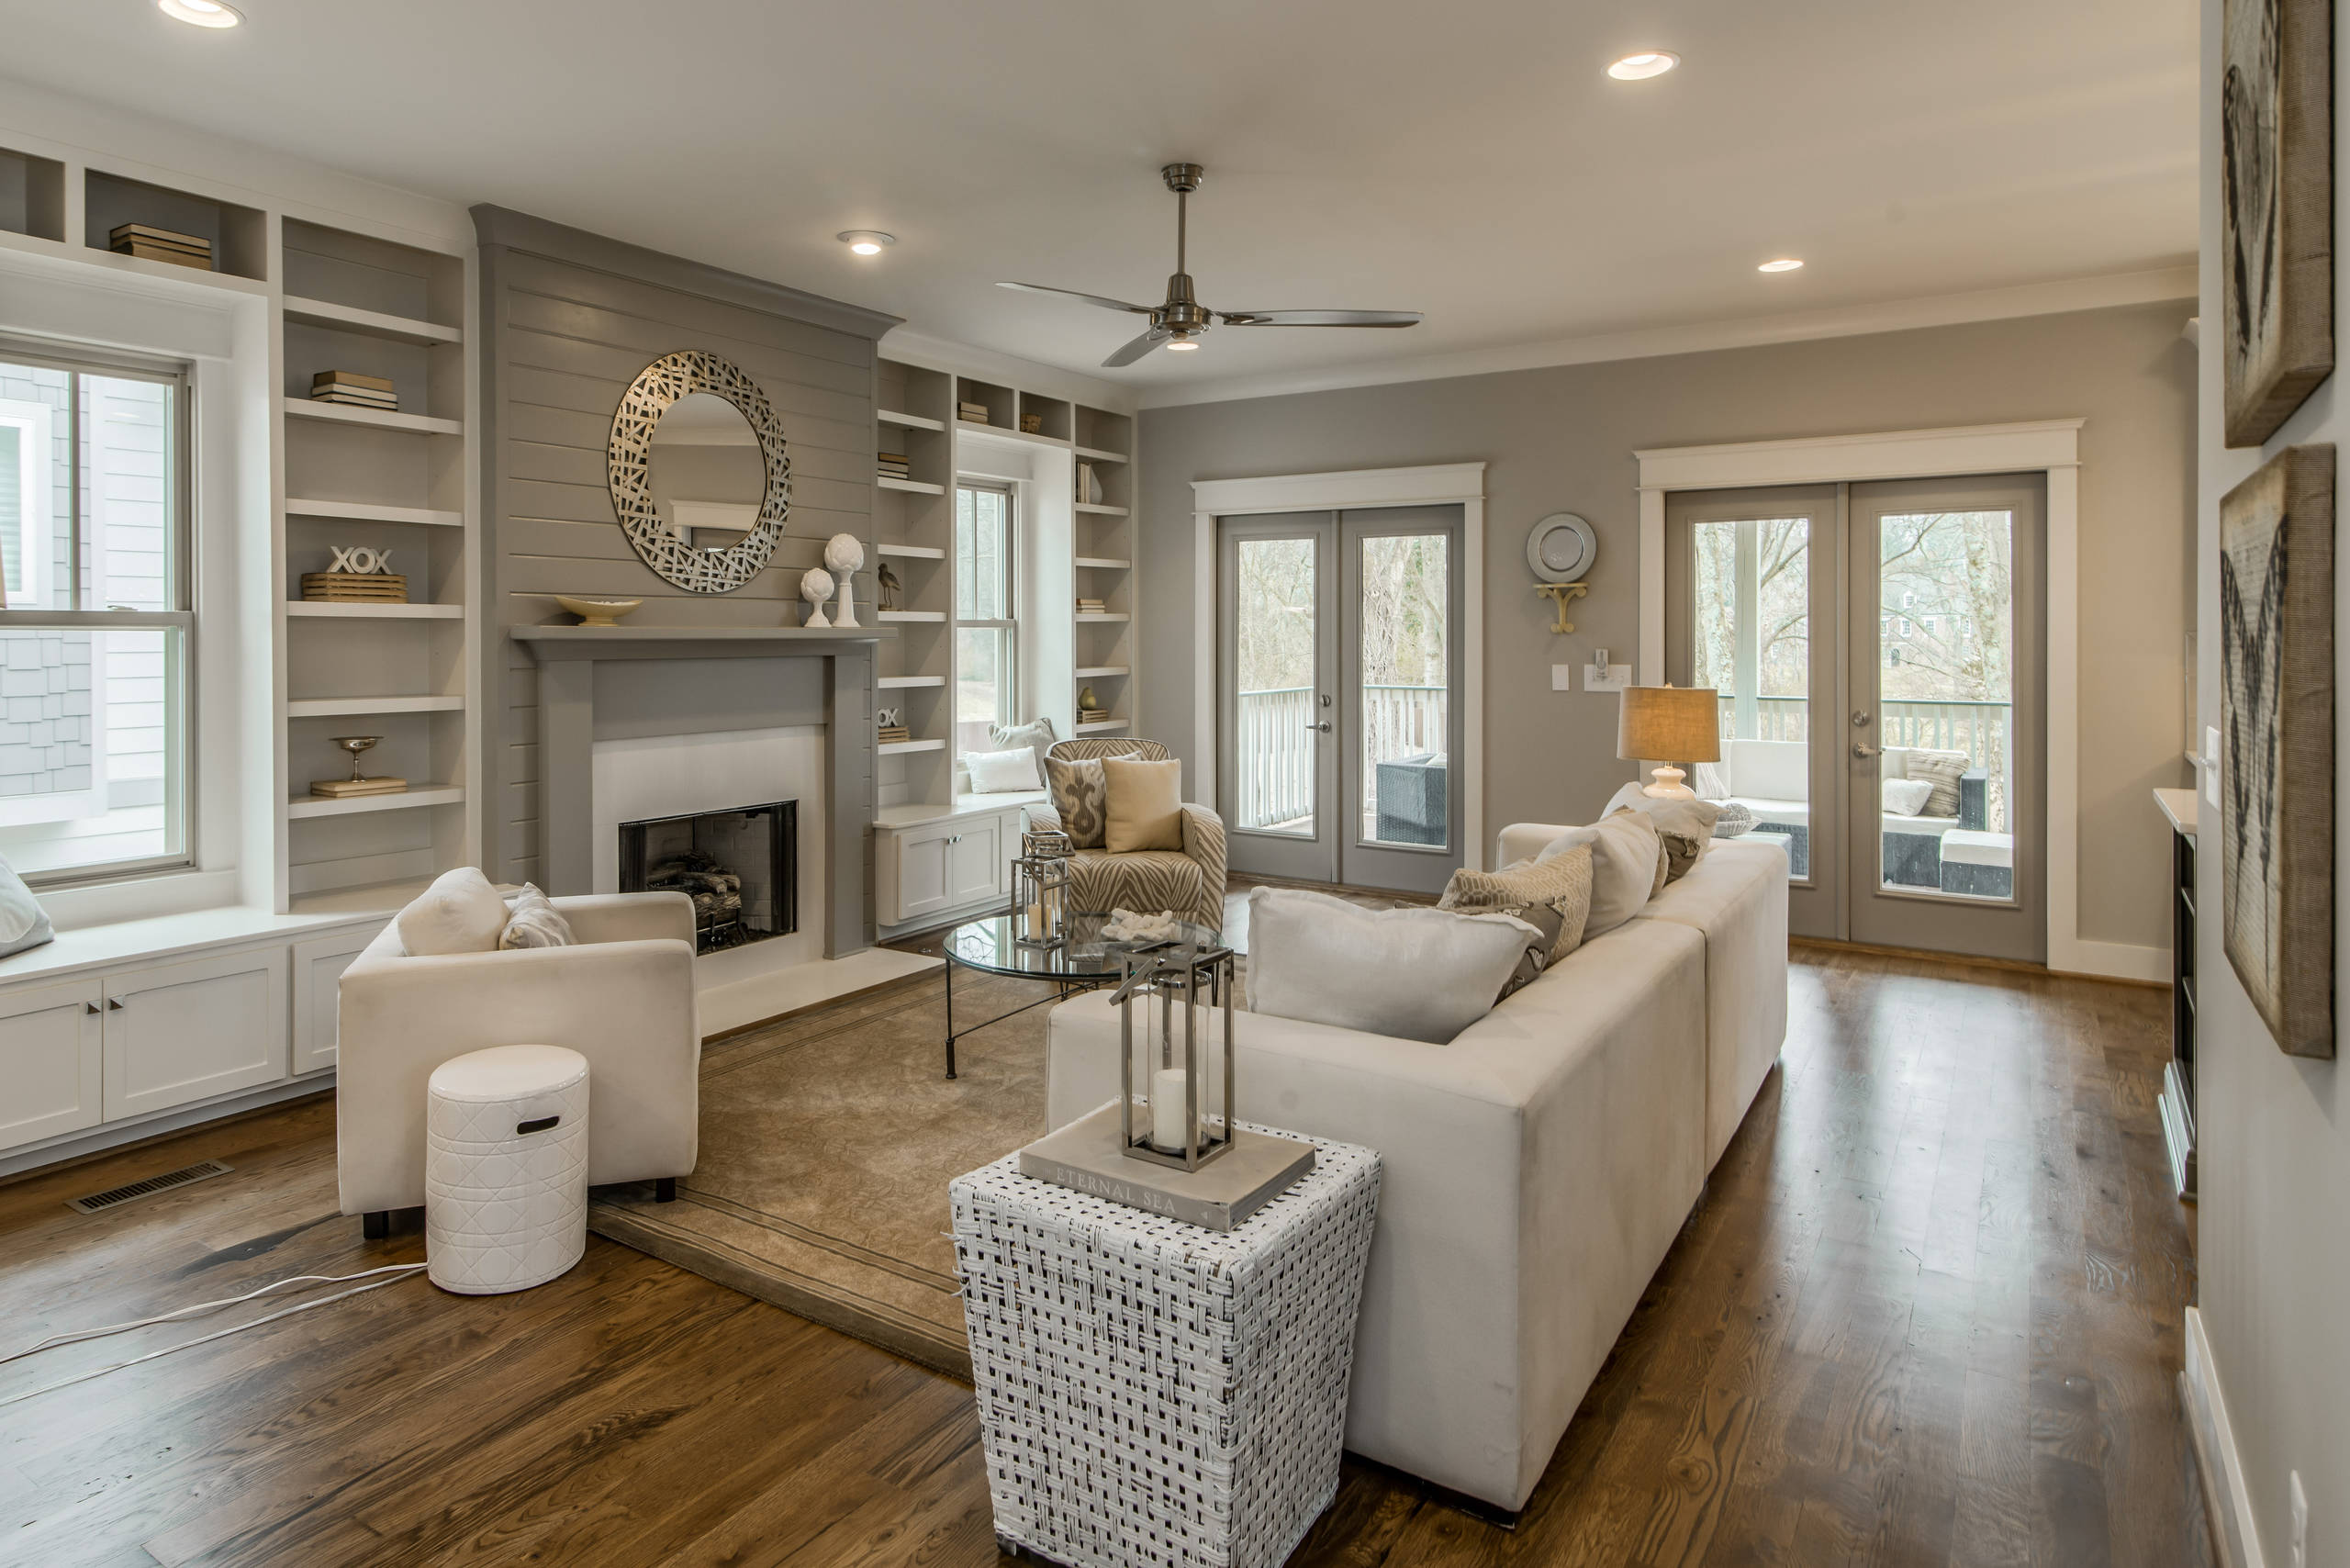 75 Beautiful Mid Sized Living Room Pictures Ideas January 2021 Houzz